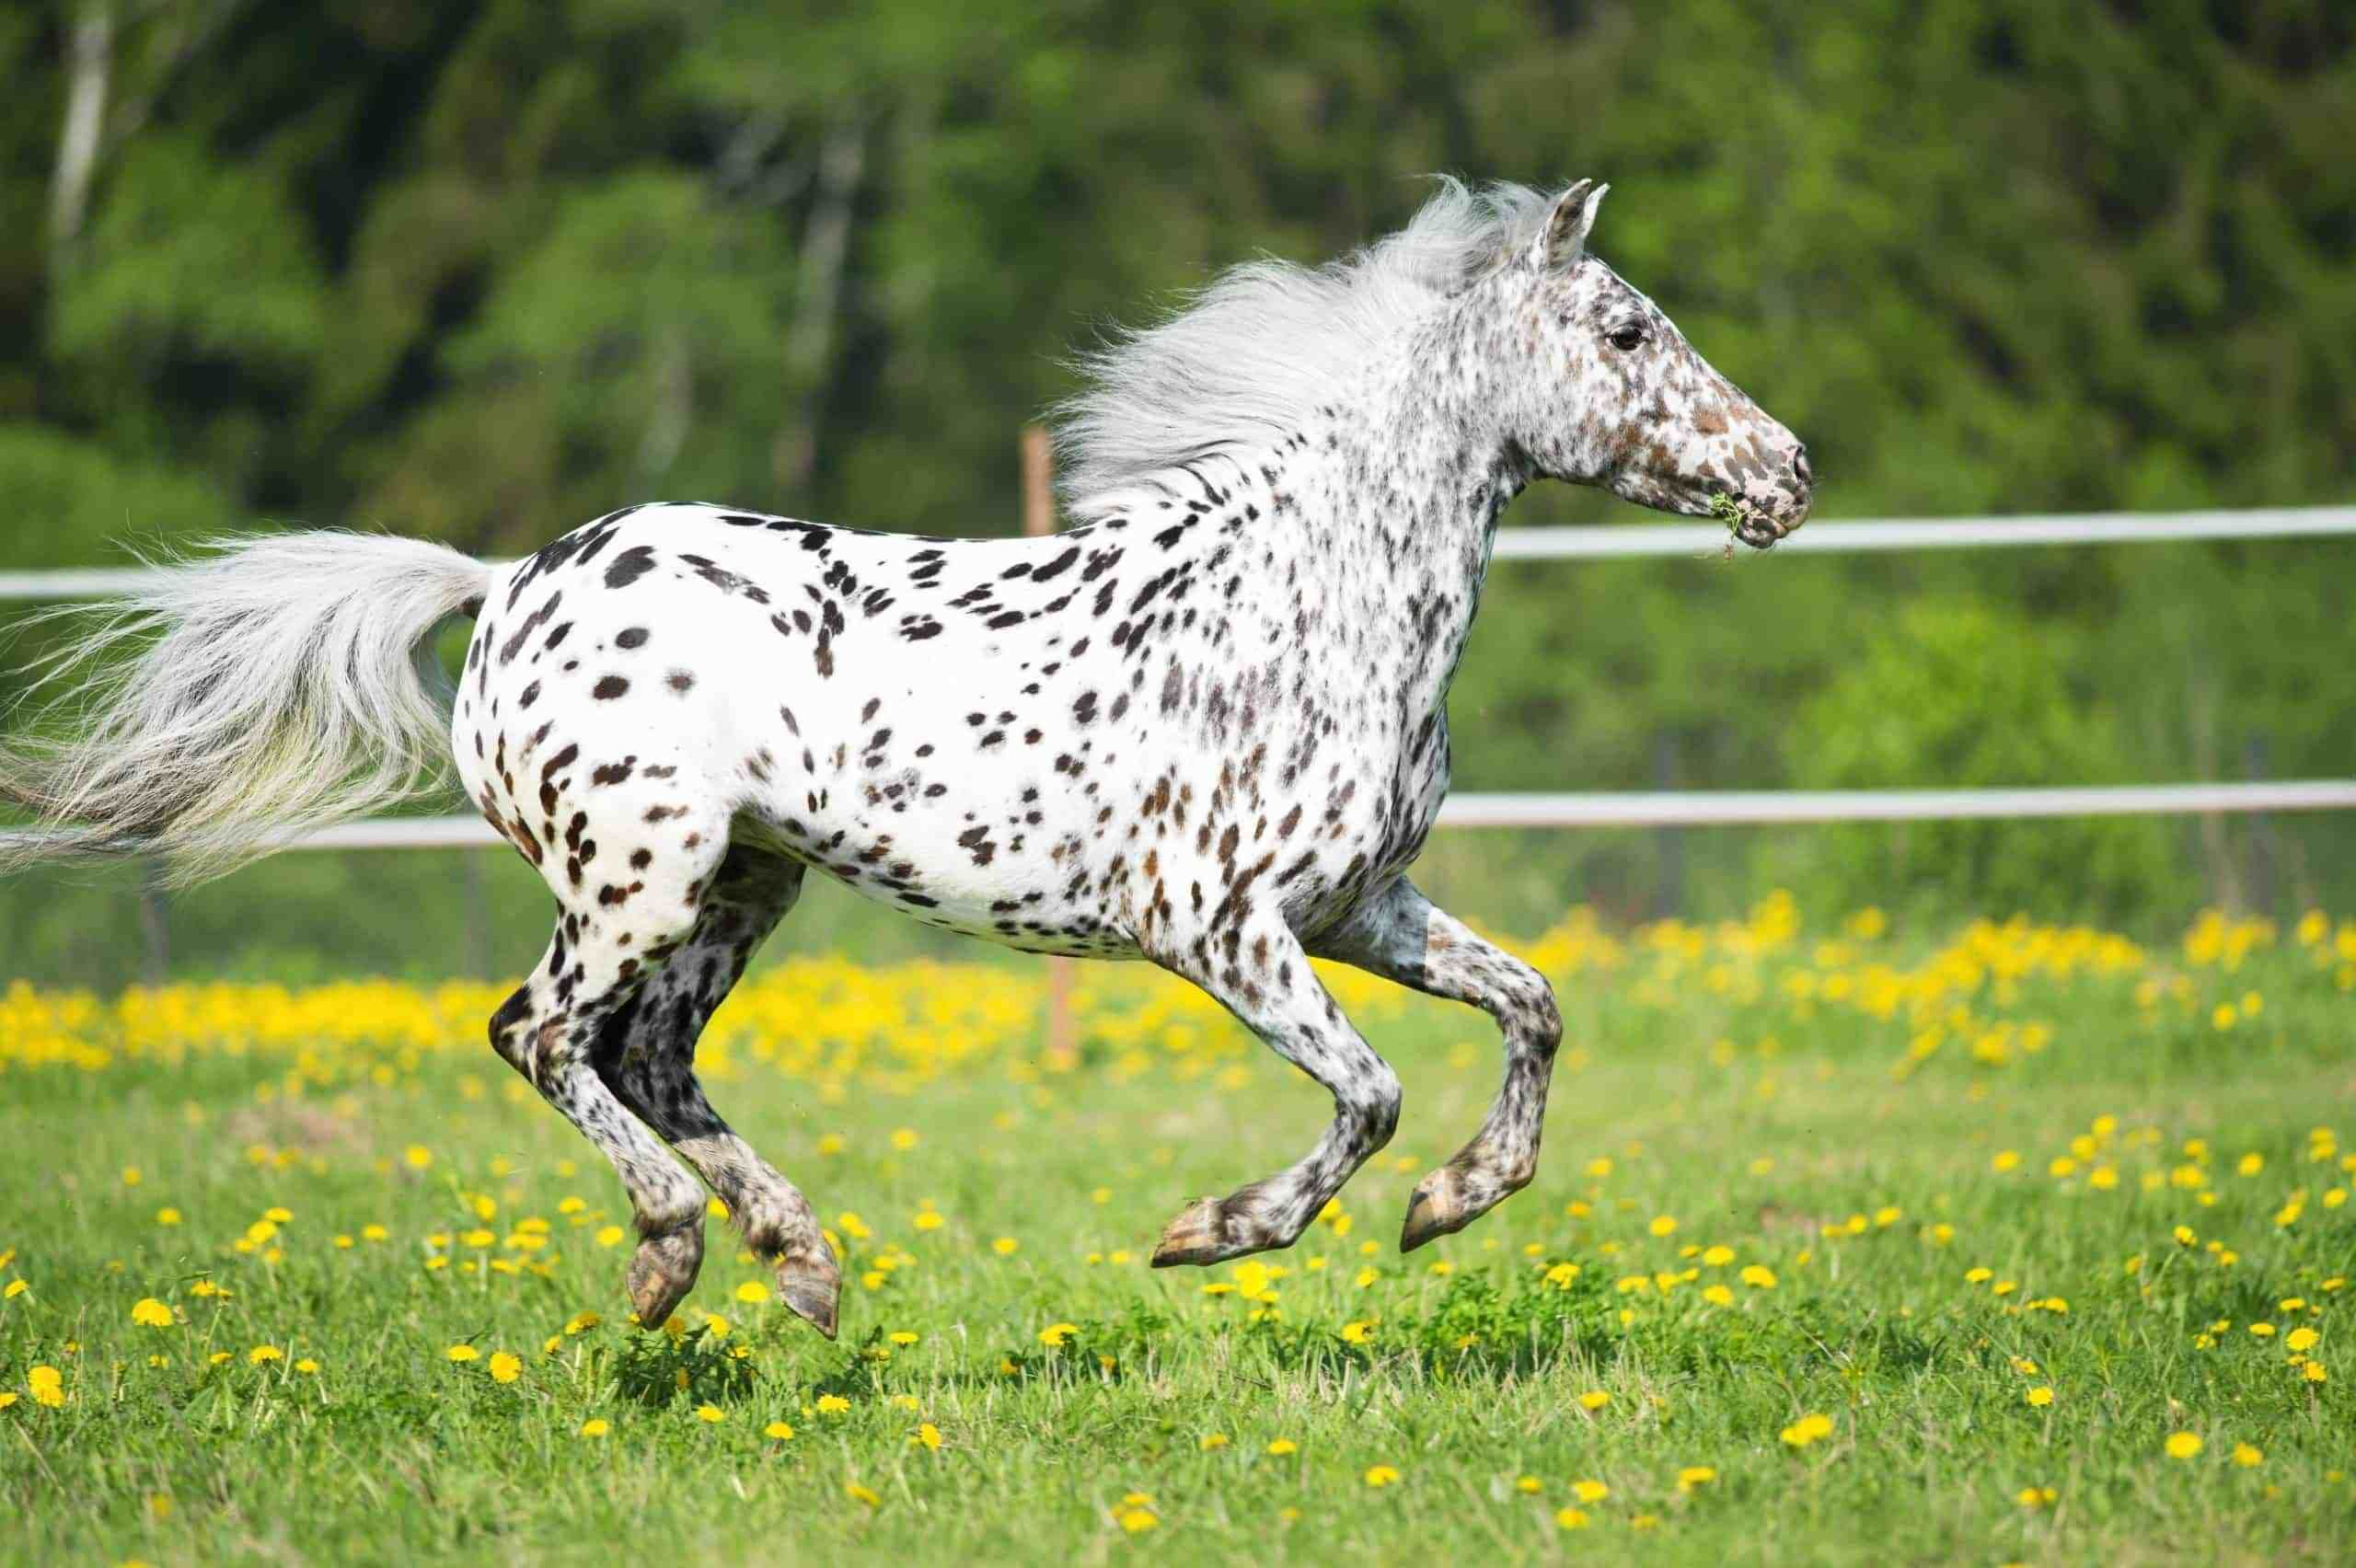 20 Of Our Favorite Pictures Of Appaloosa Horses Appaloosa Horses Horses Appaloosa [ 1704 x 2560 Pixel ]